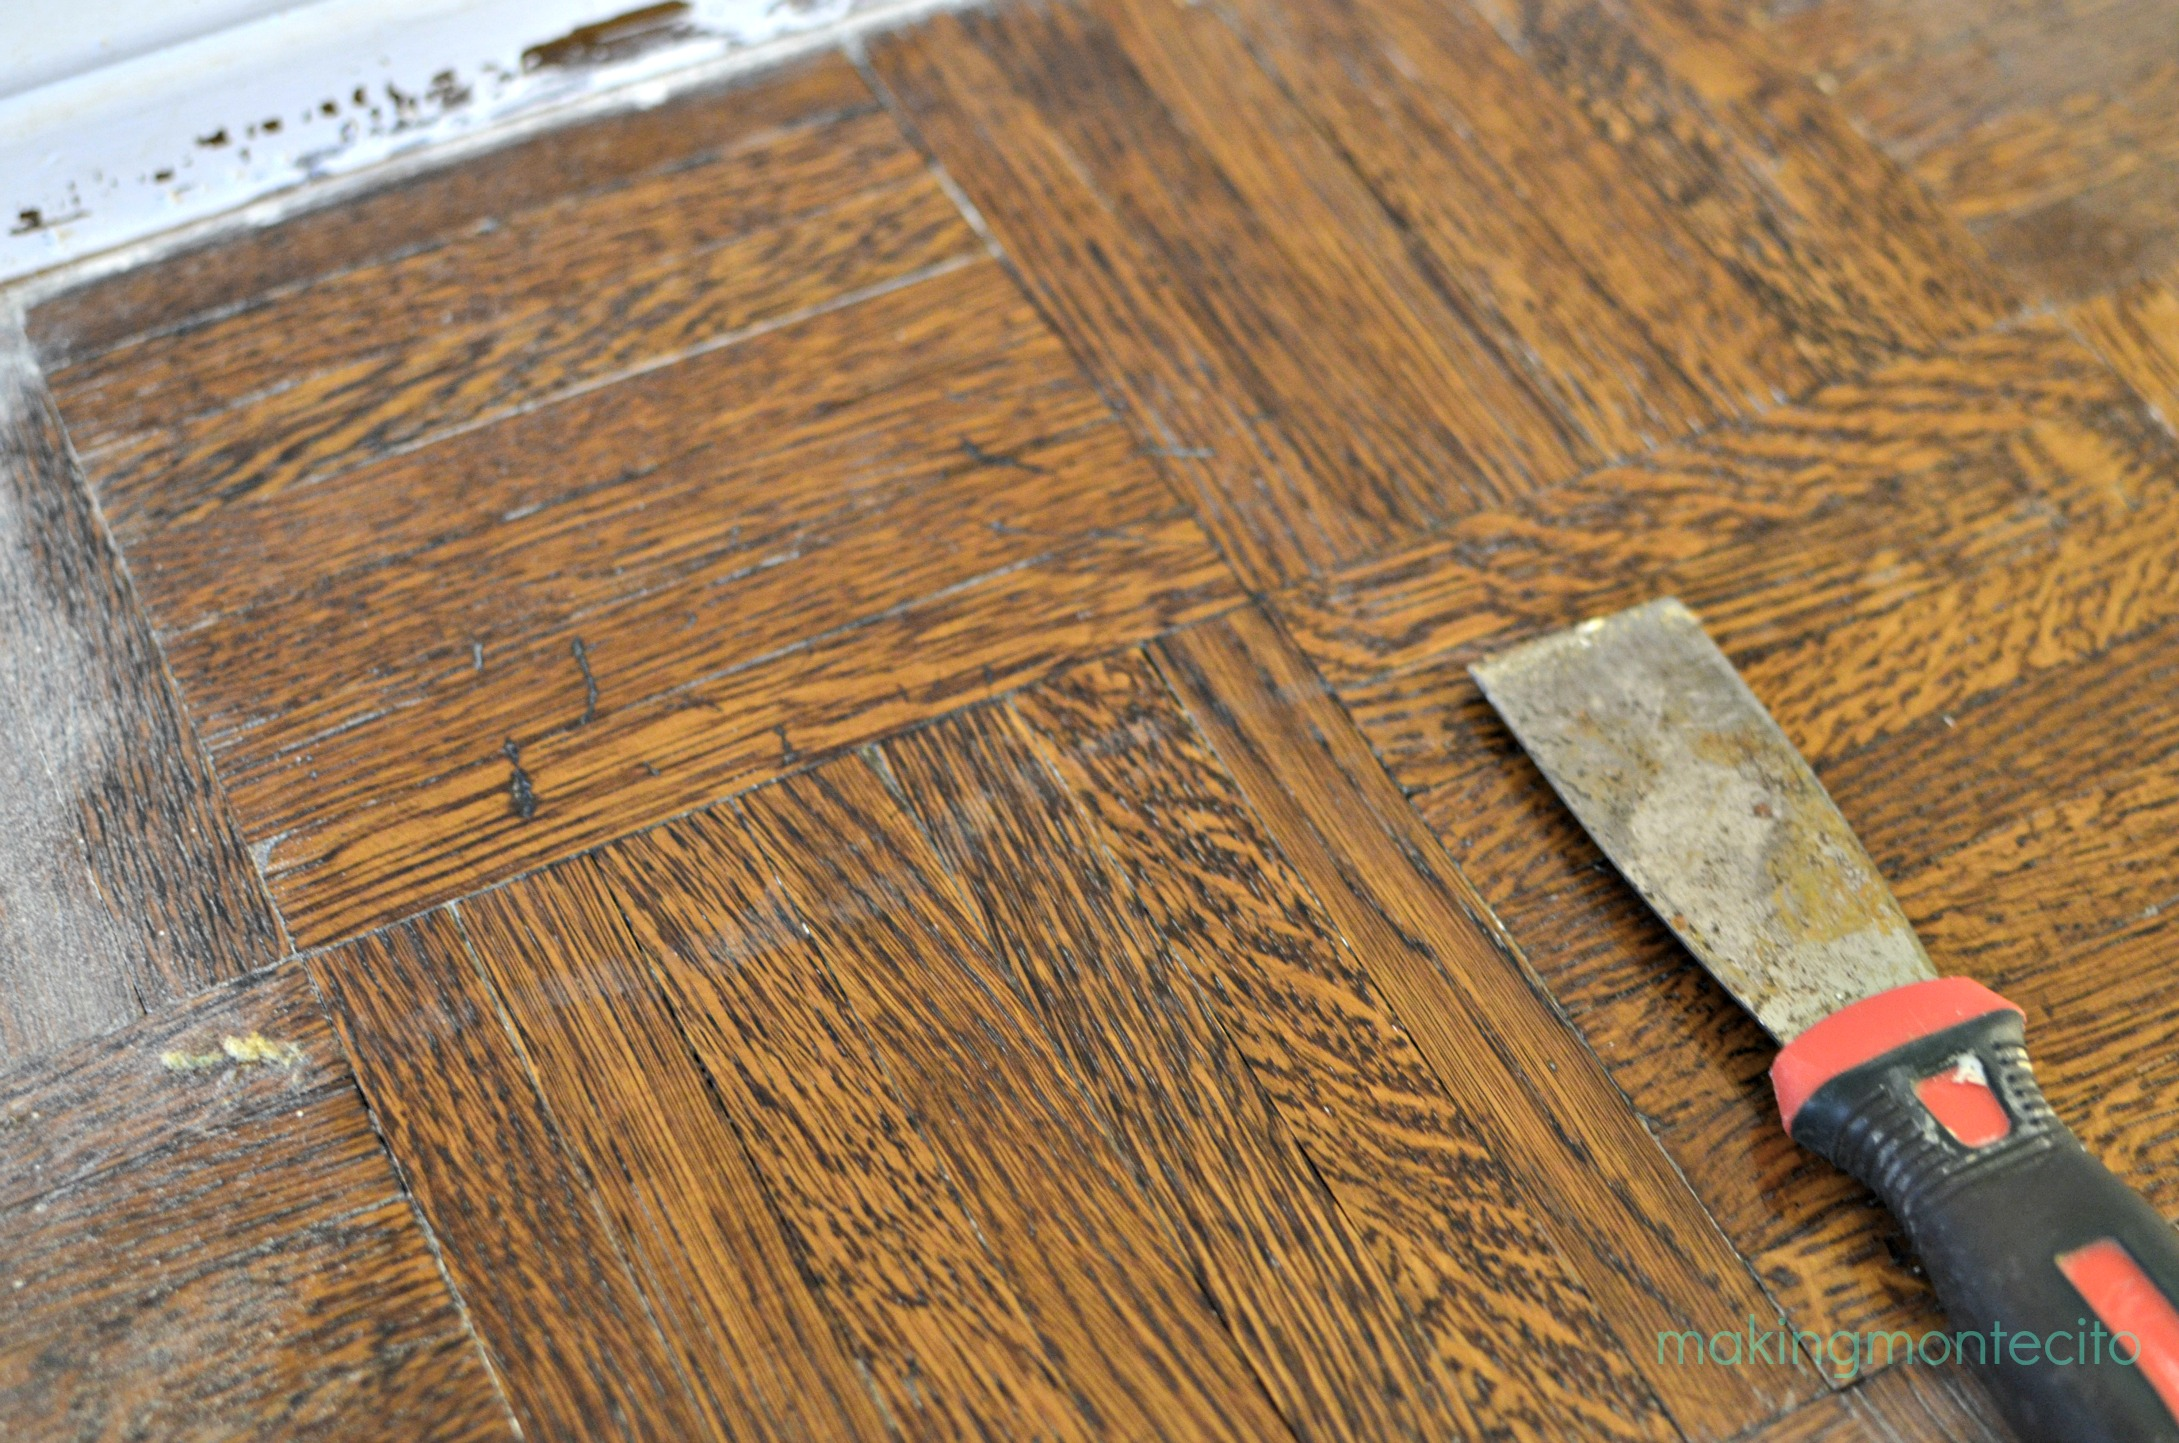 How to remove paint from hardwood floors - Making Montecito Paint Removal Process 6